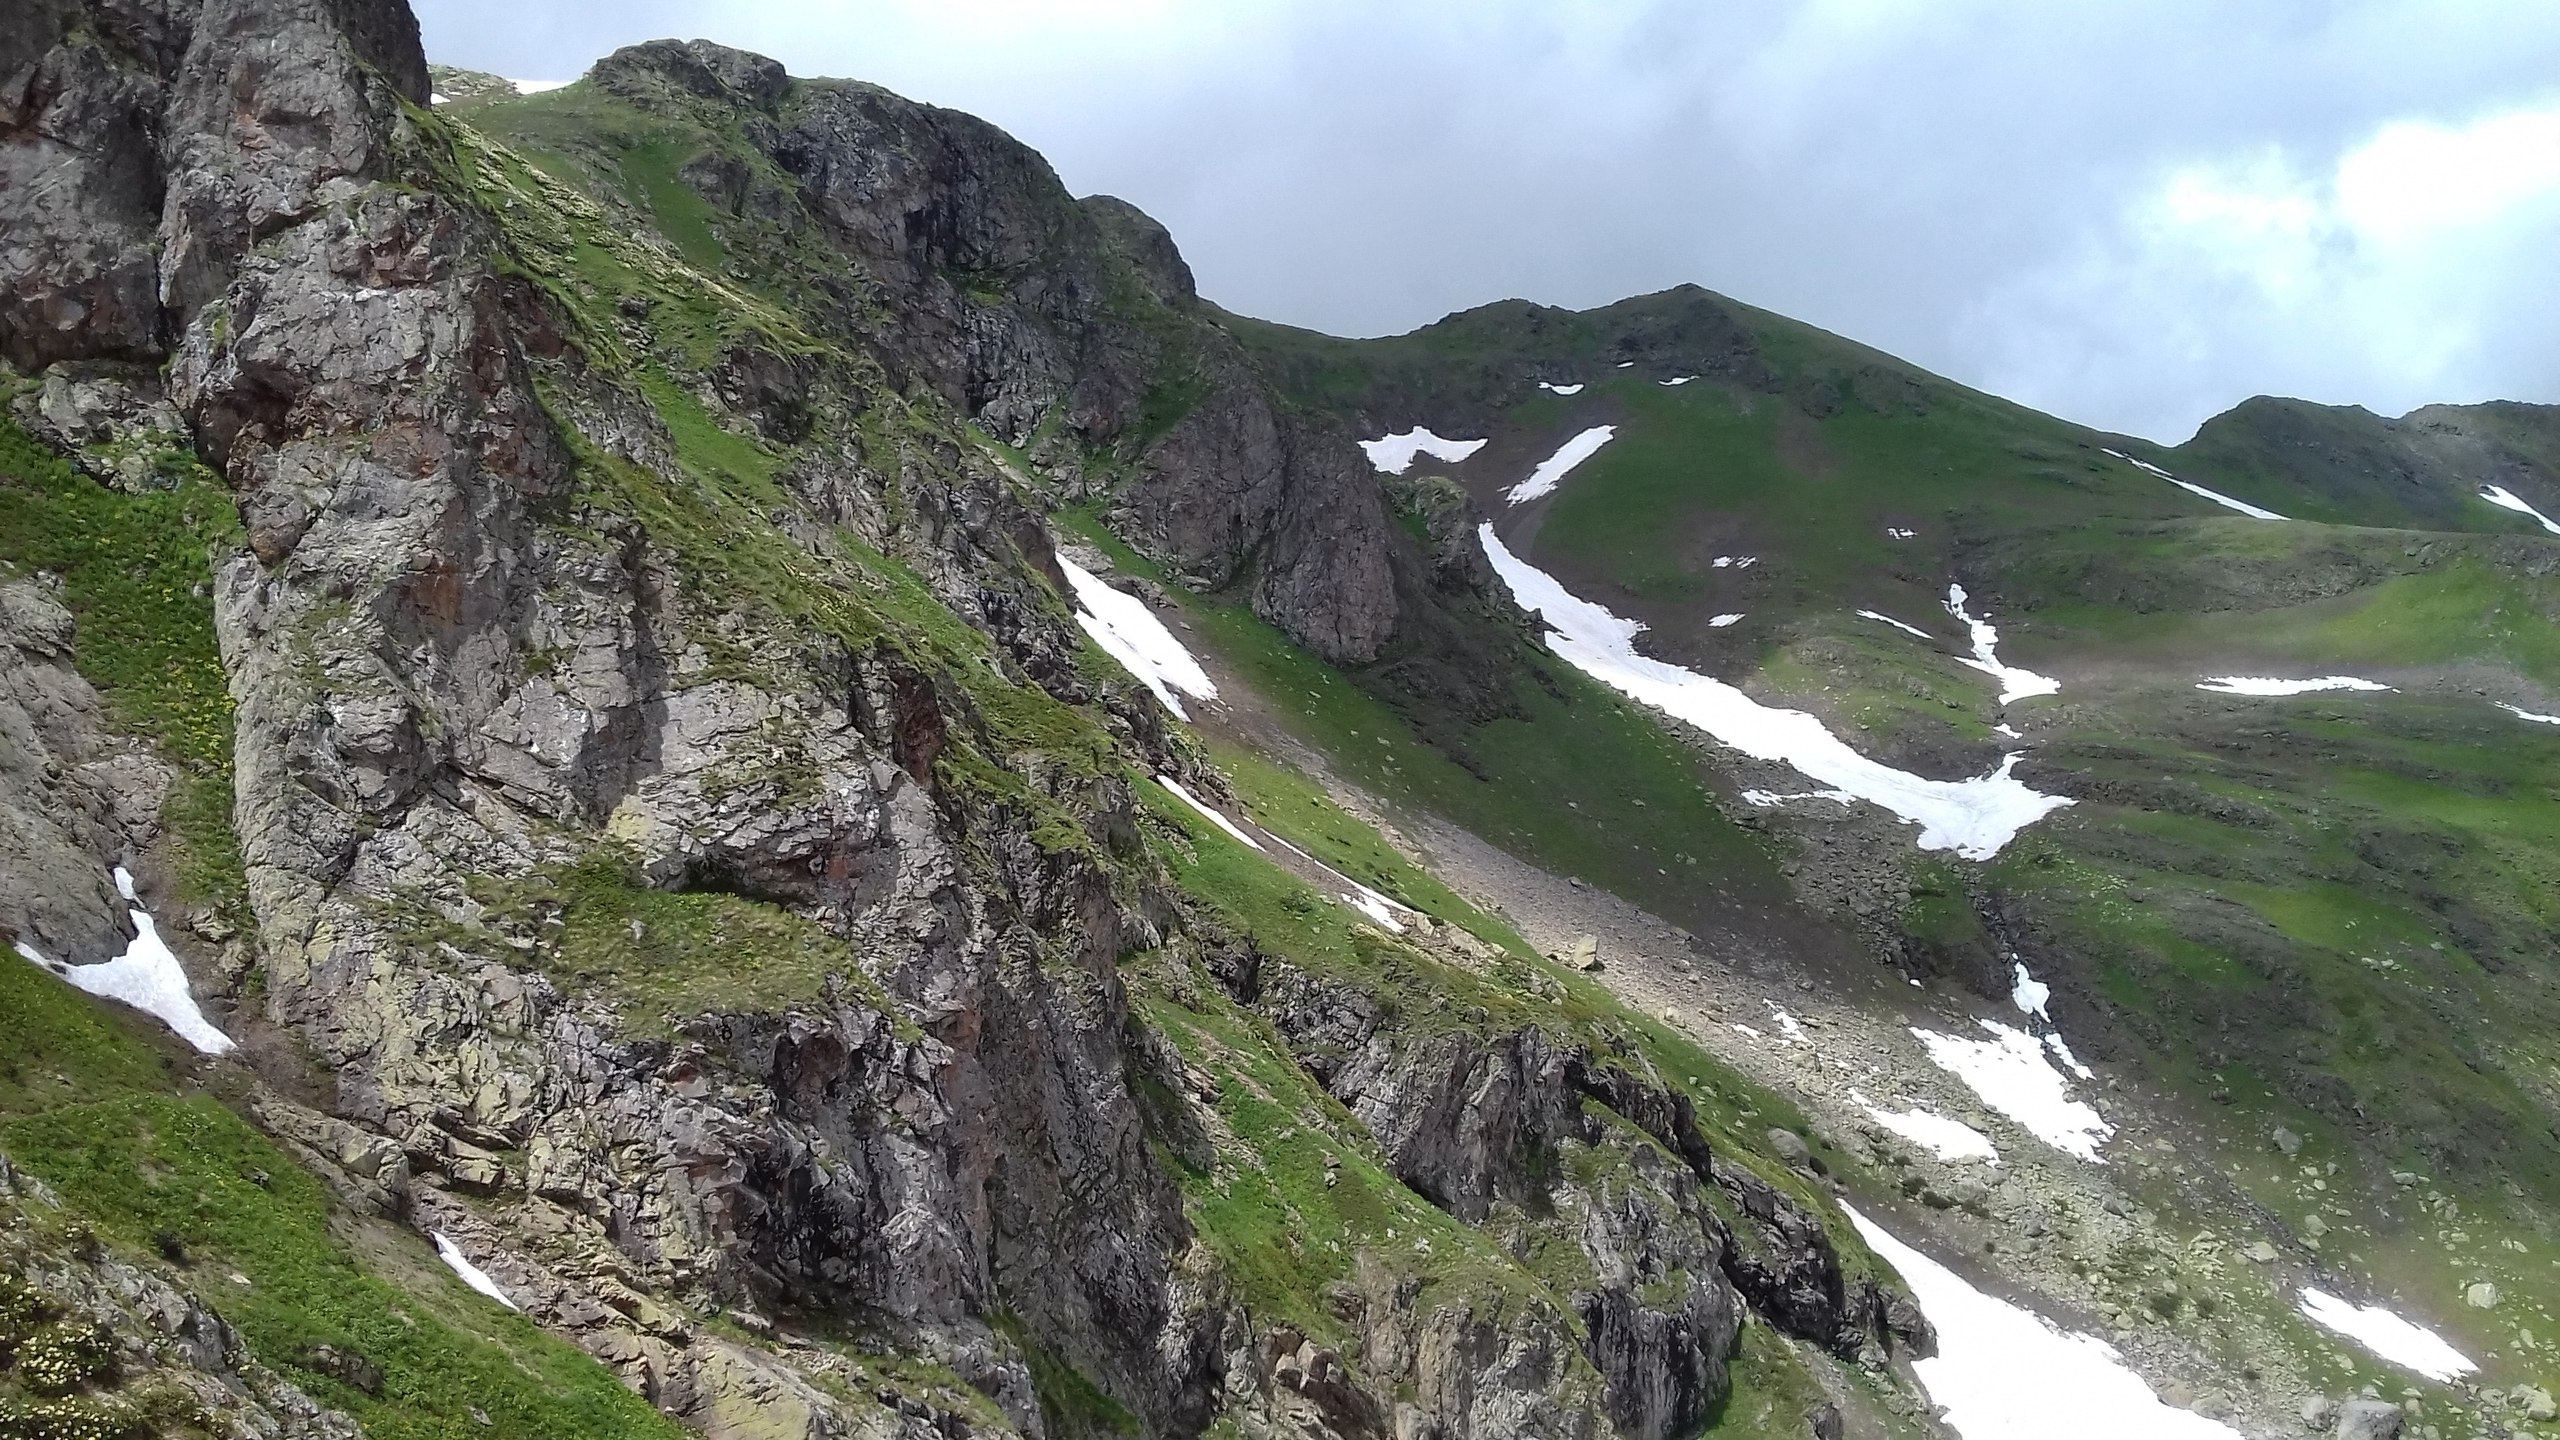 MegaTransCaucasus 2017: through the mountains to the sea. Part 7. Home on Aishkham Klumbochka, part, Lake, almost, meters, lake, located, pass, pass, received, only, begins, hours, fotochki, flower bed, Aishkham, lakes, through, valley, located